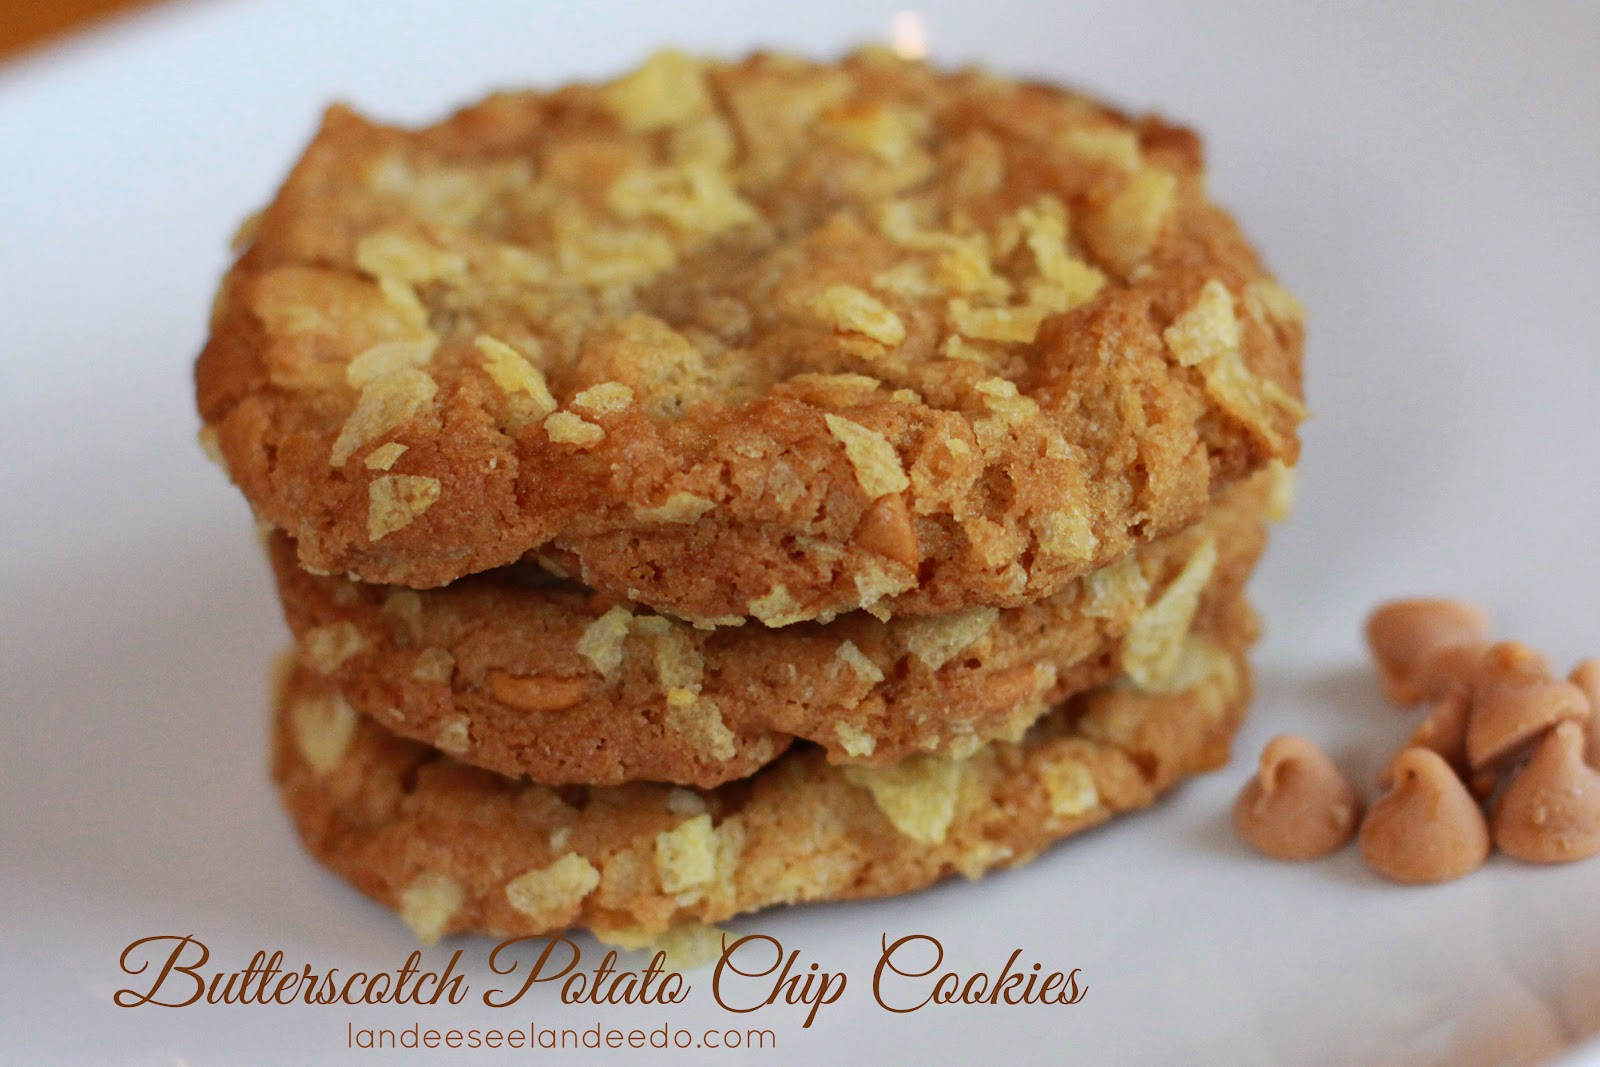 Butterscotch Potato Chip Cookies - landeelu.com